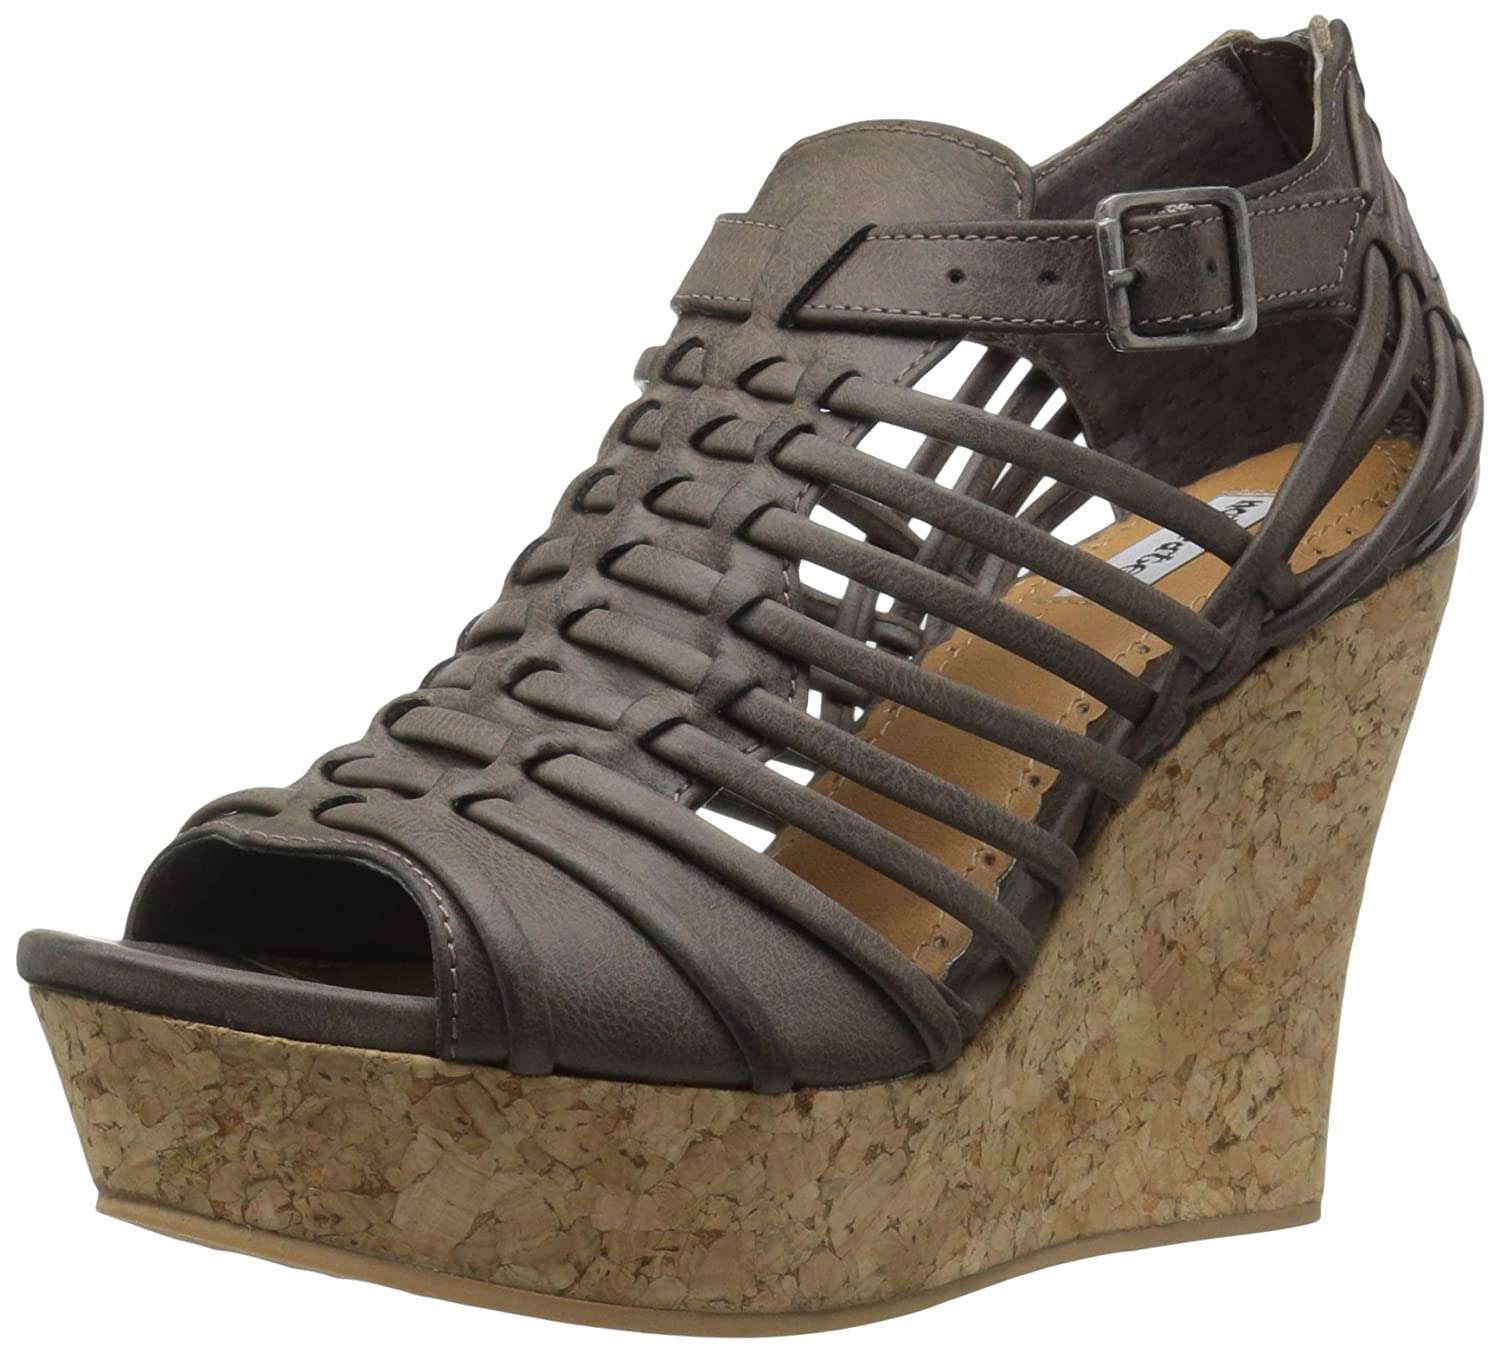 Not Rated Women's Jolina Wedge Sandal B01MG5NP62 9.5 B(M) US|Taupe